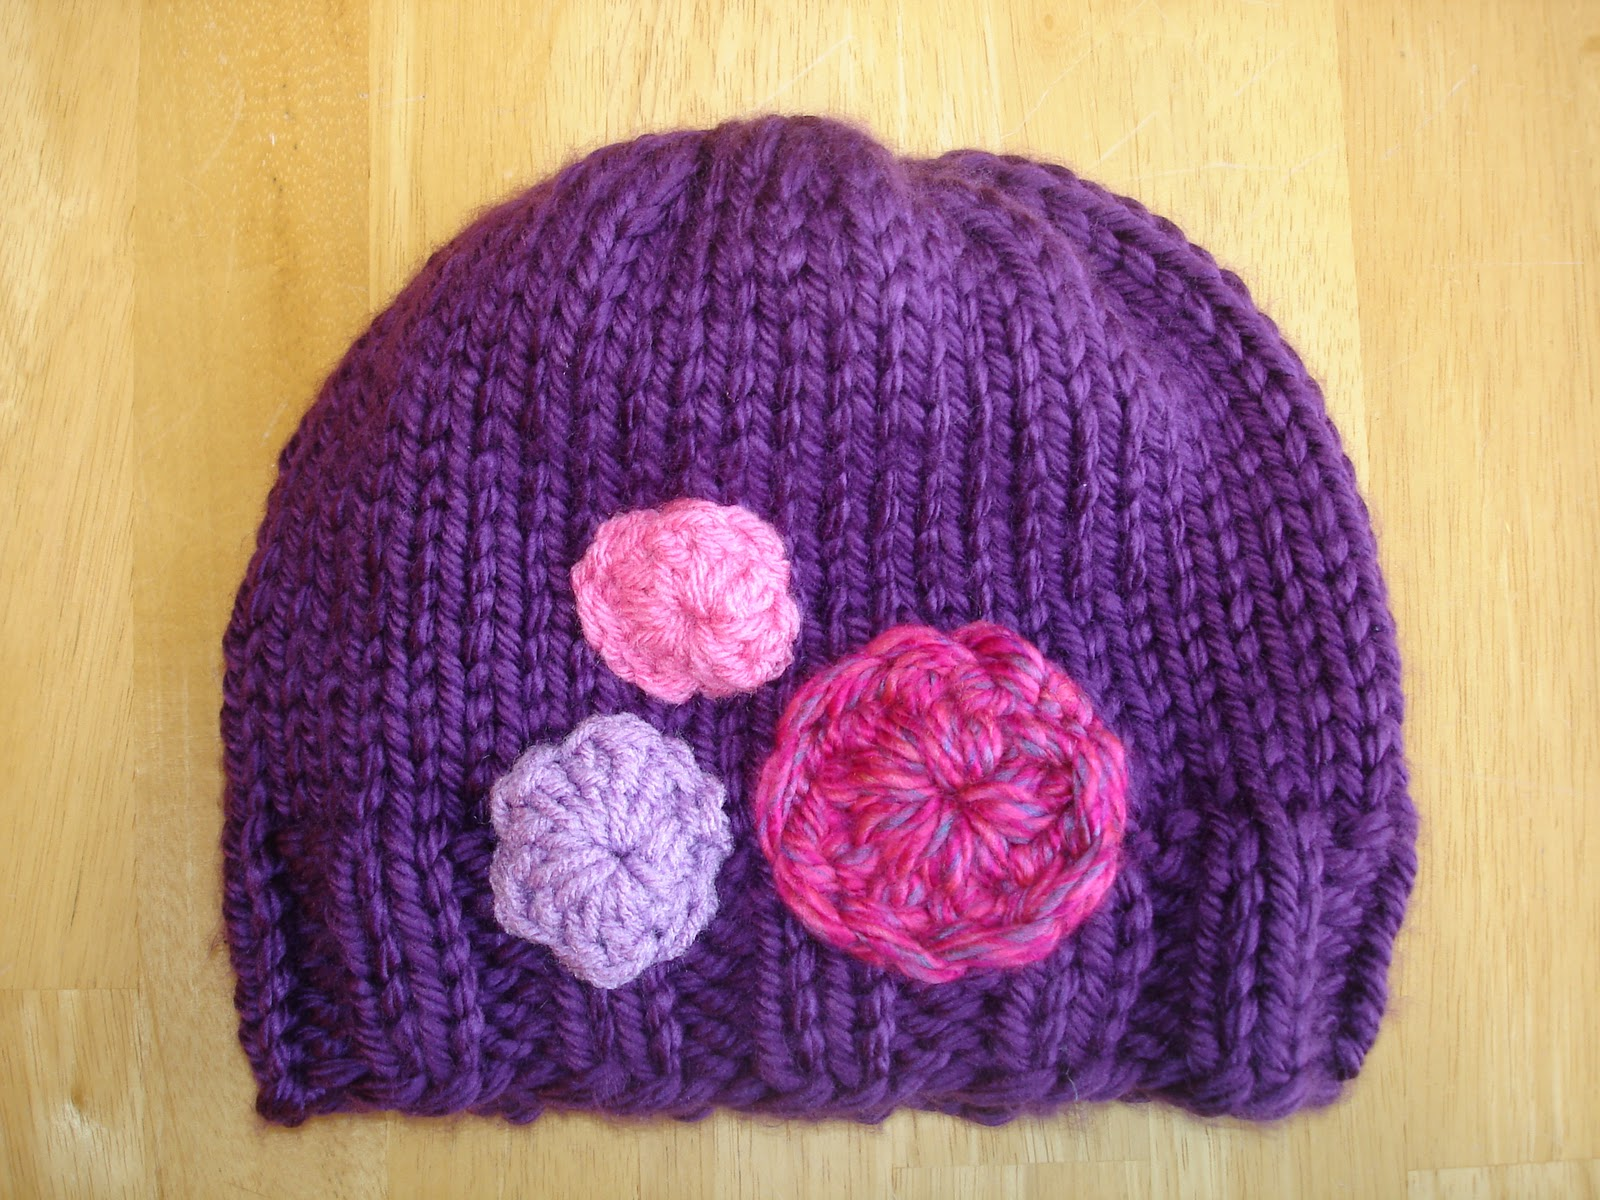 Free Knitted Beanie Patterns For Kids : Fiber Flux: Free Knitting Pattern! Her Royal Highness Hat...